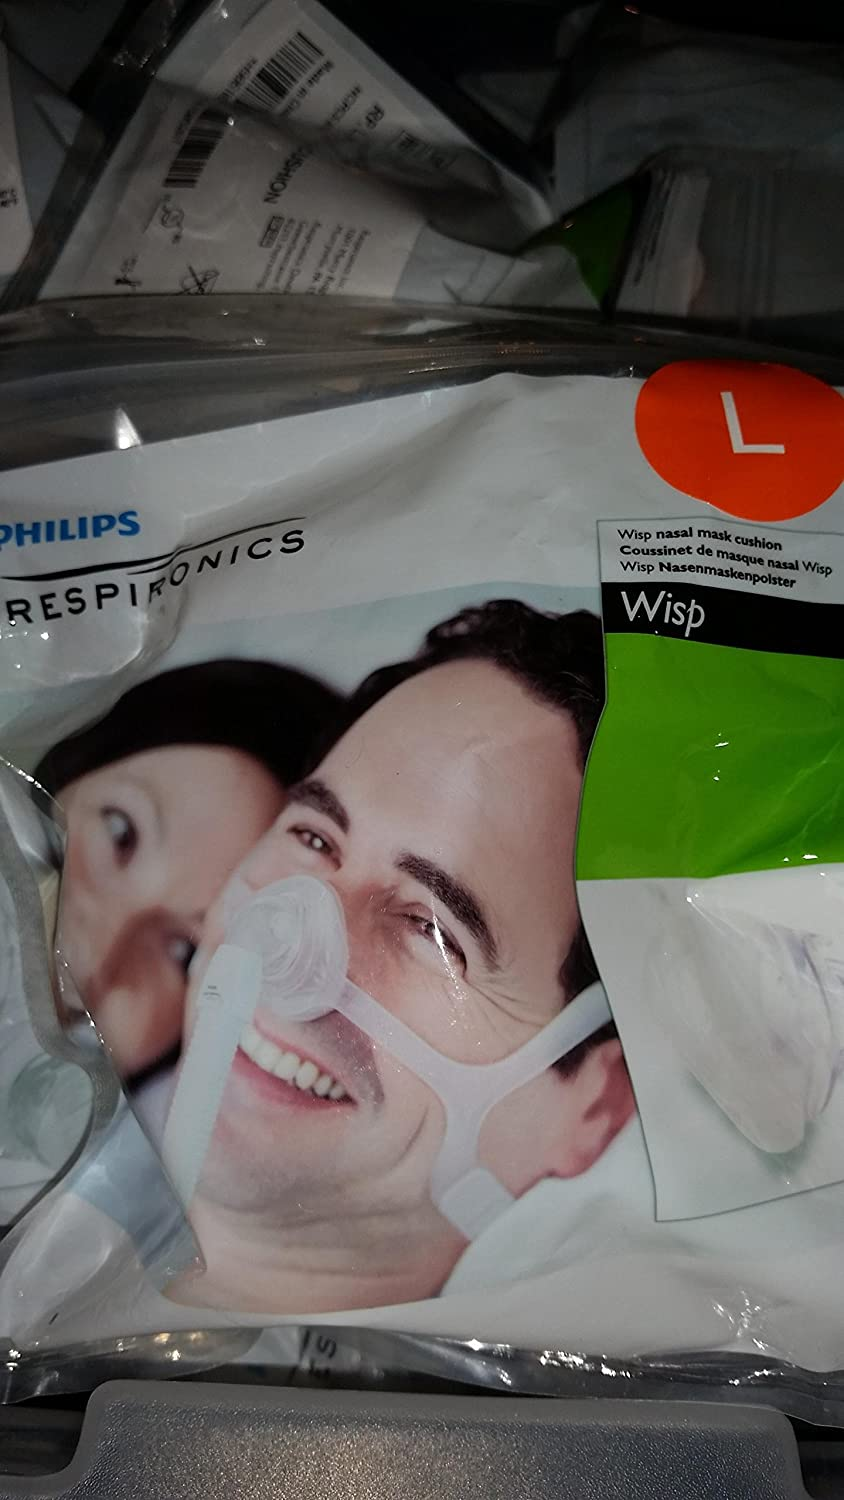 Wisp Nasal Mask Replacement Cushion (Large Cushion)